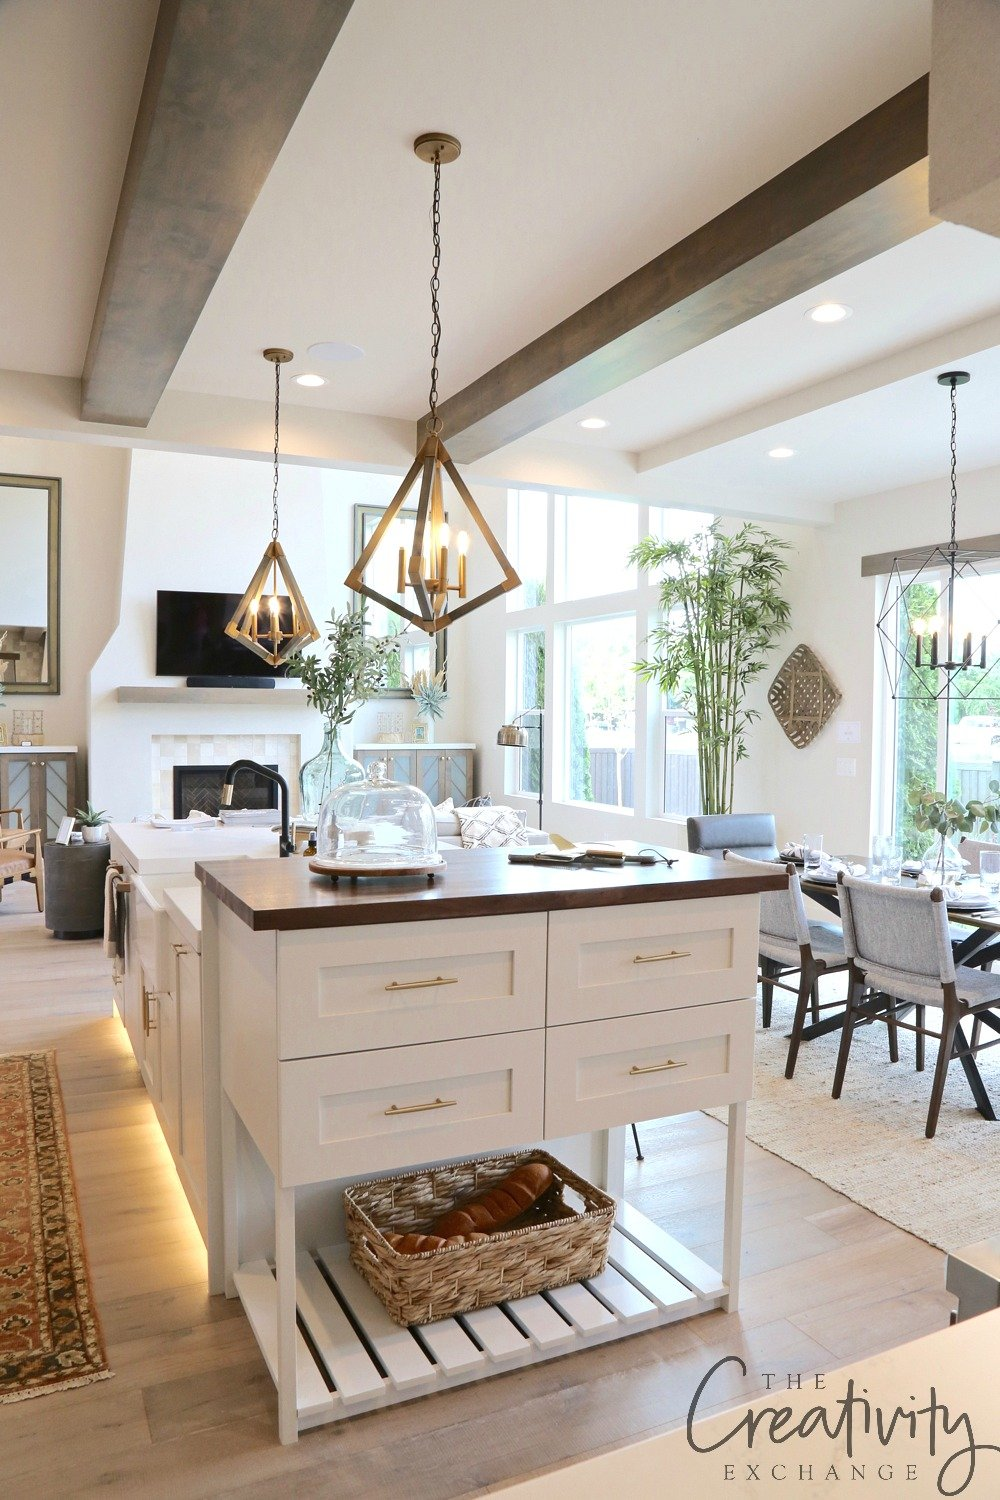 Large open kitchen with wood beams